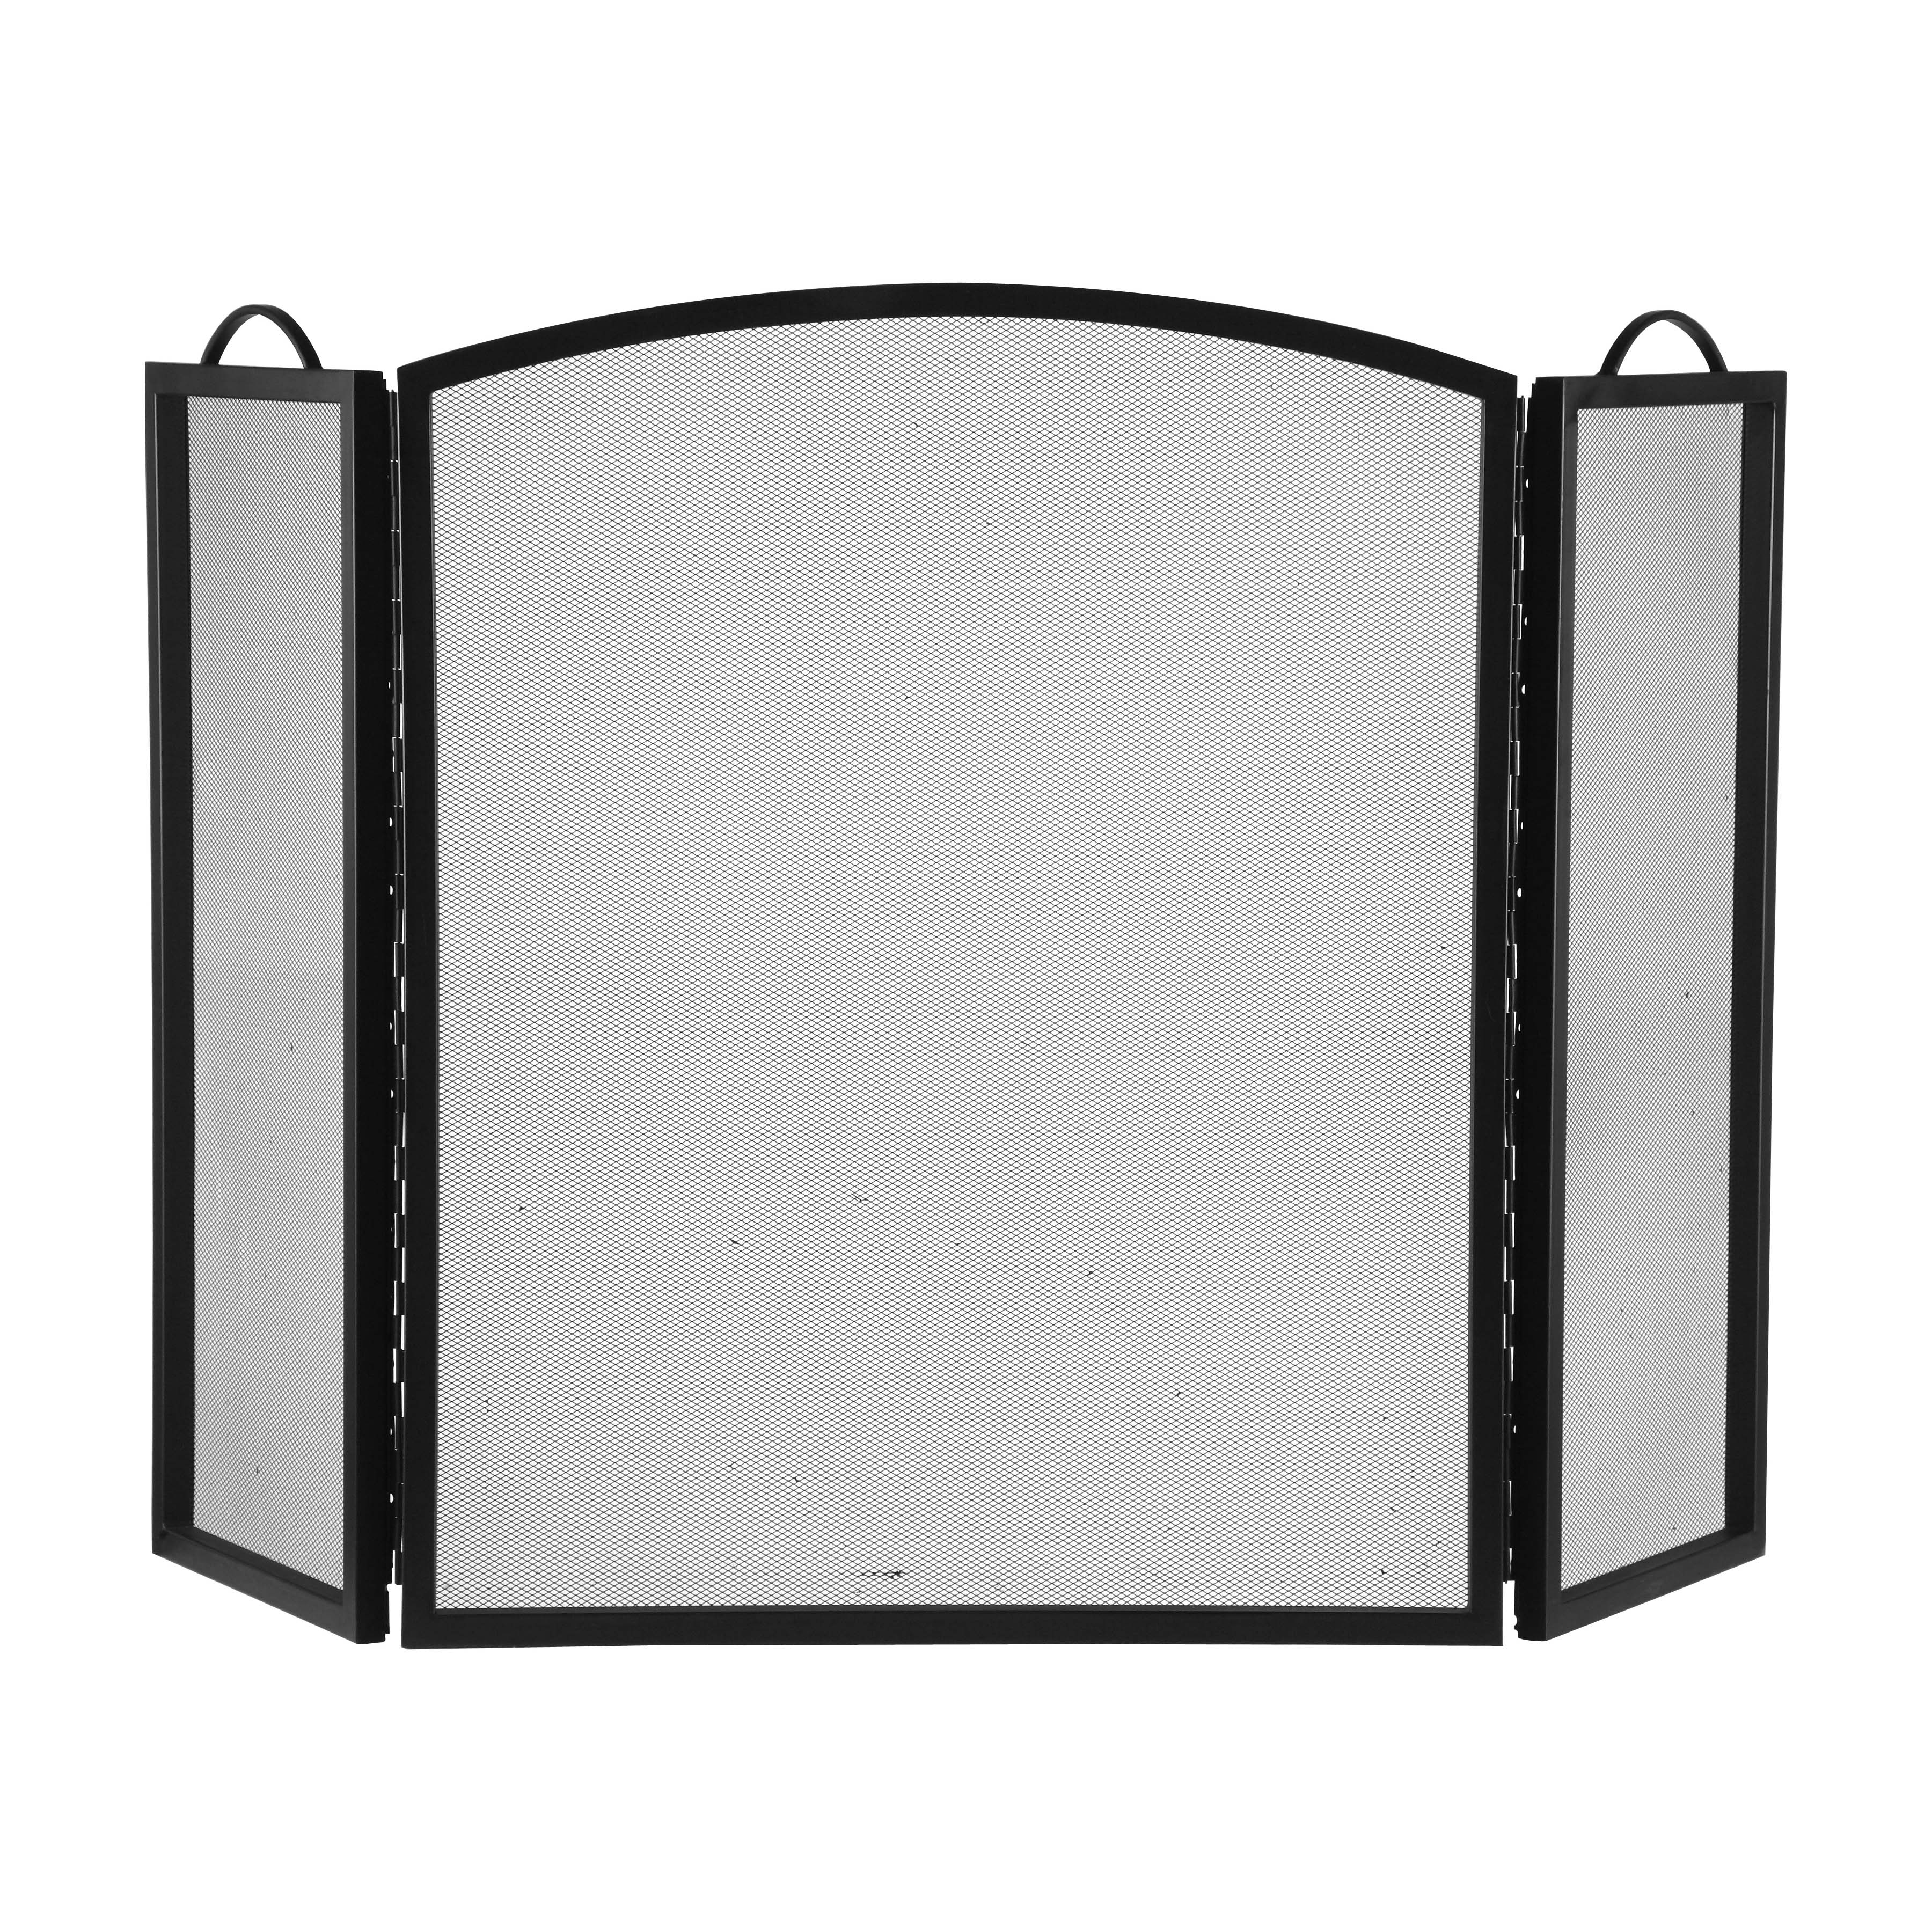 Picture of Simple Spaces CPO90505BK3L Fireplace Screen, 51-3/4 in W, 32 in H